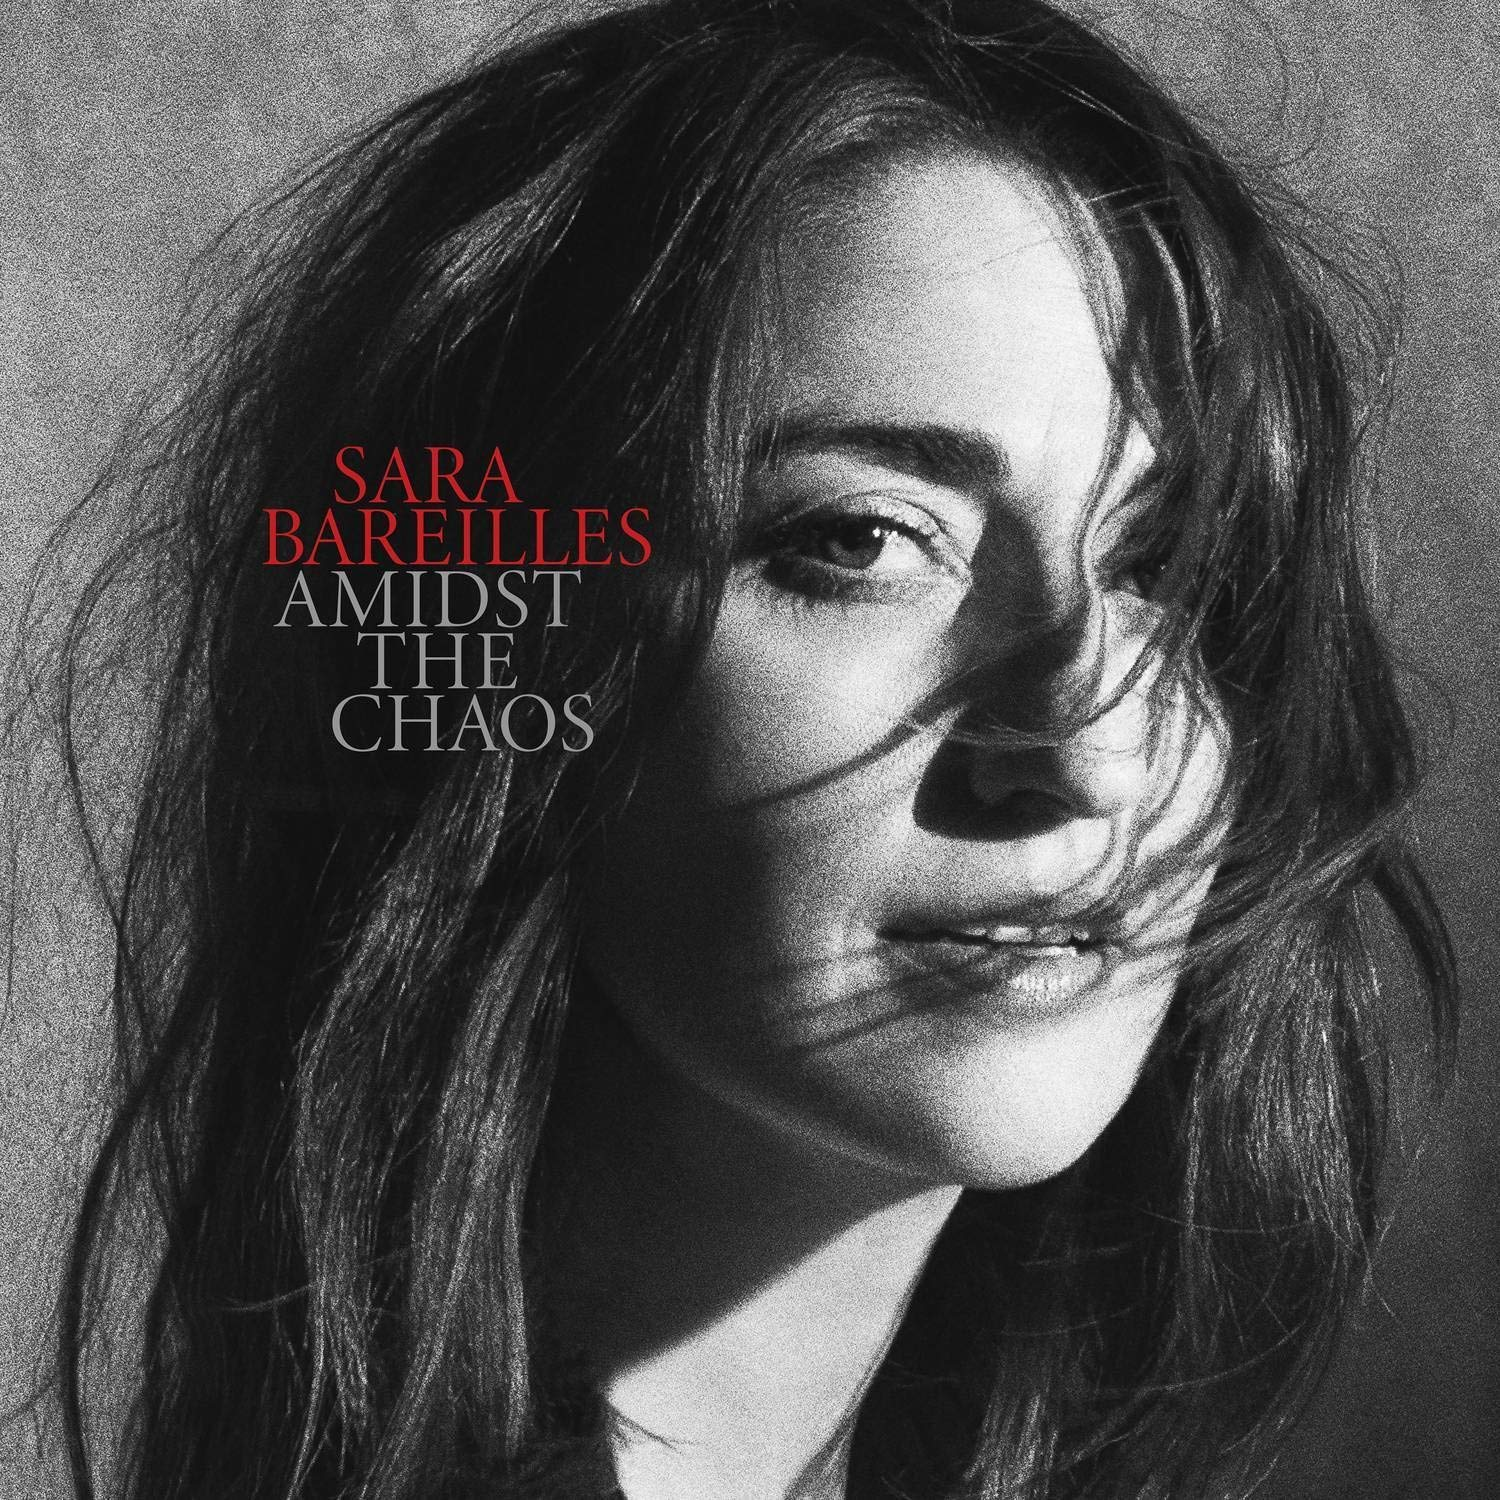 Review: Sara Bareilles' 'Amidst the Chaos' is an Alluring